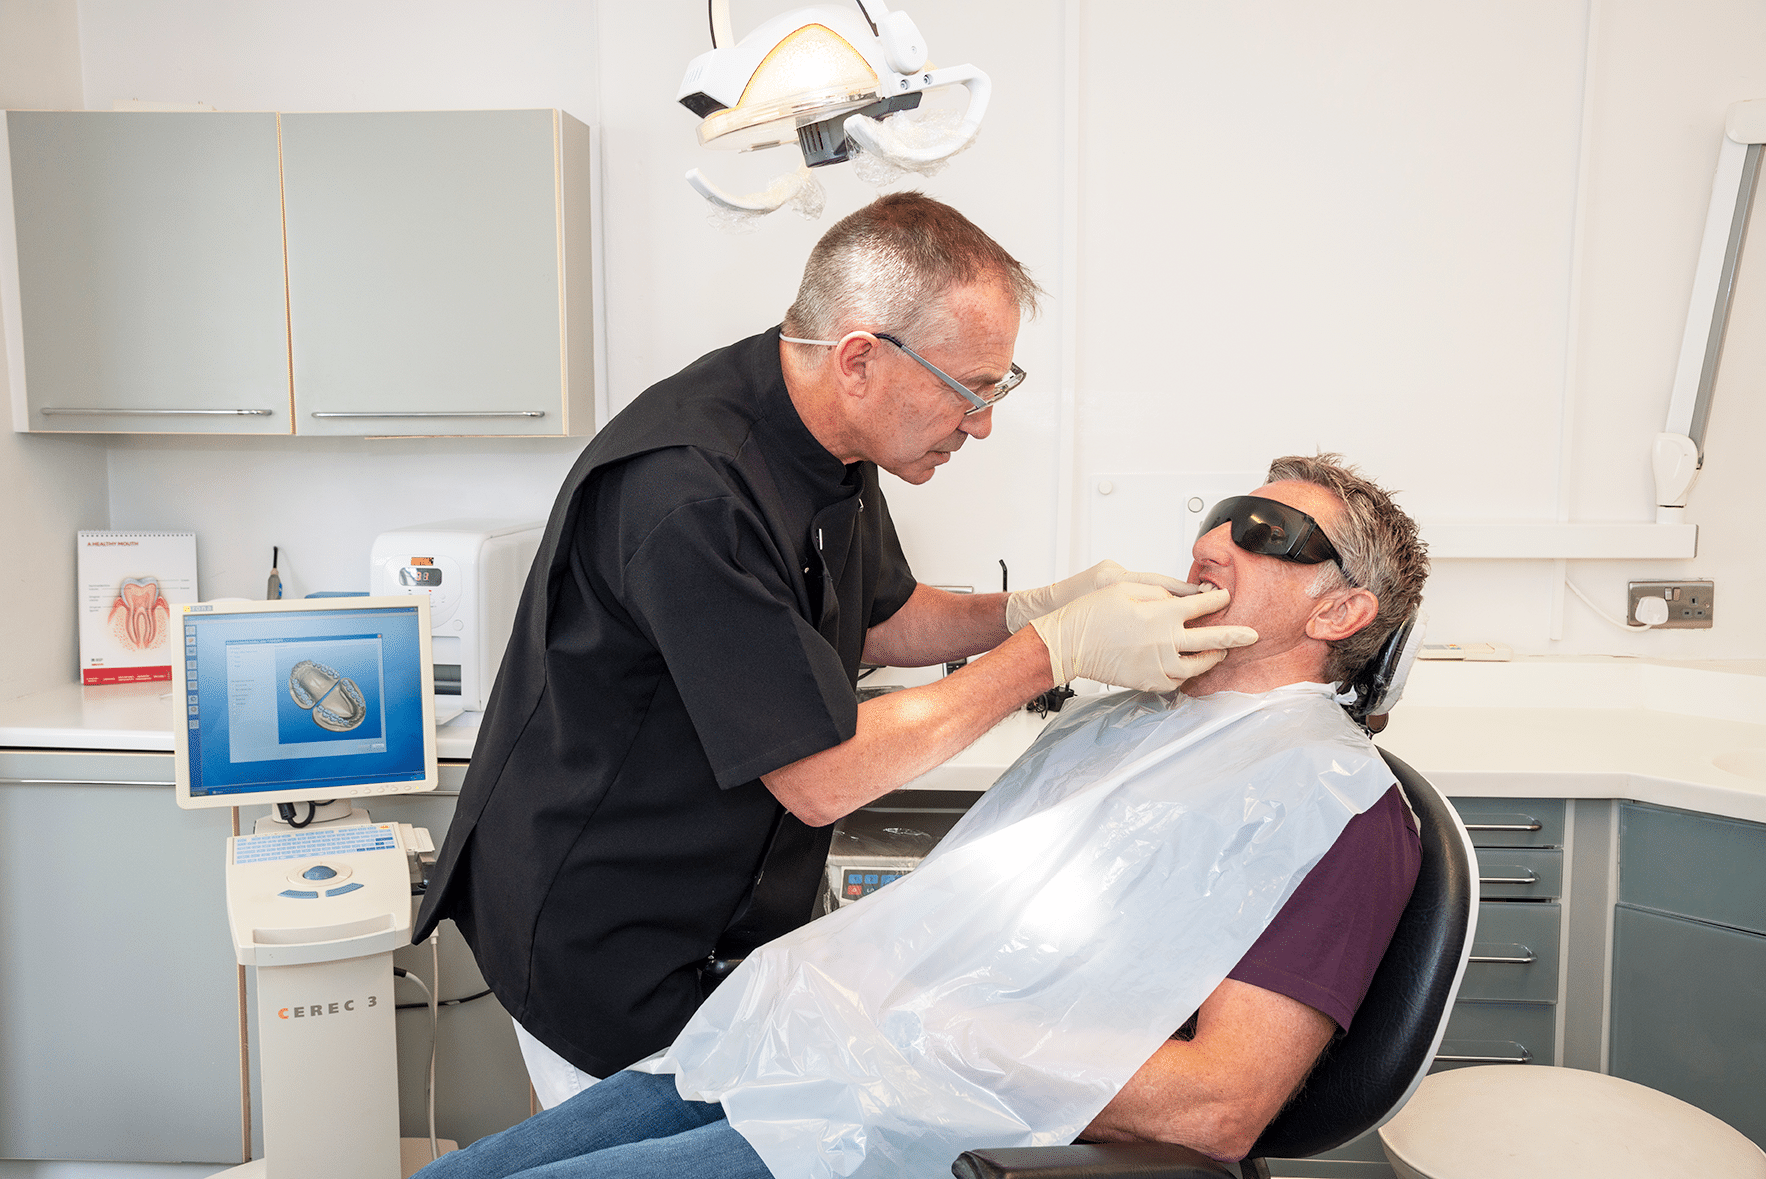 Dental Treatment - Dentist with Patient in Chair